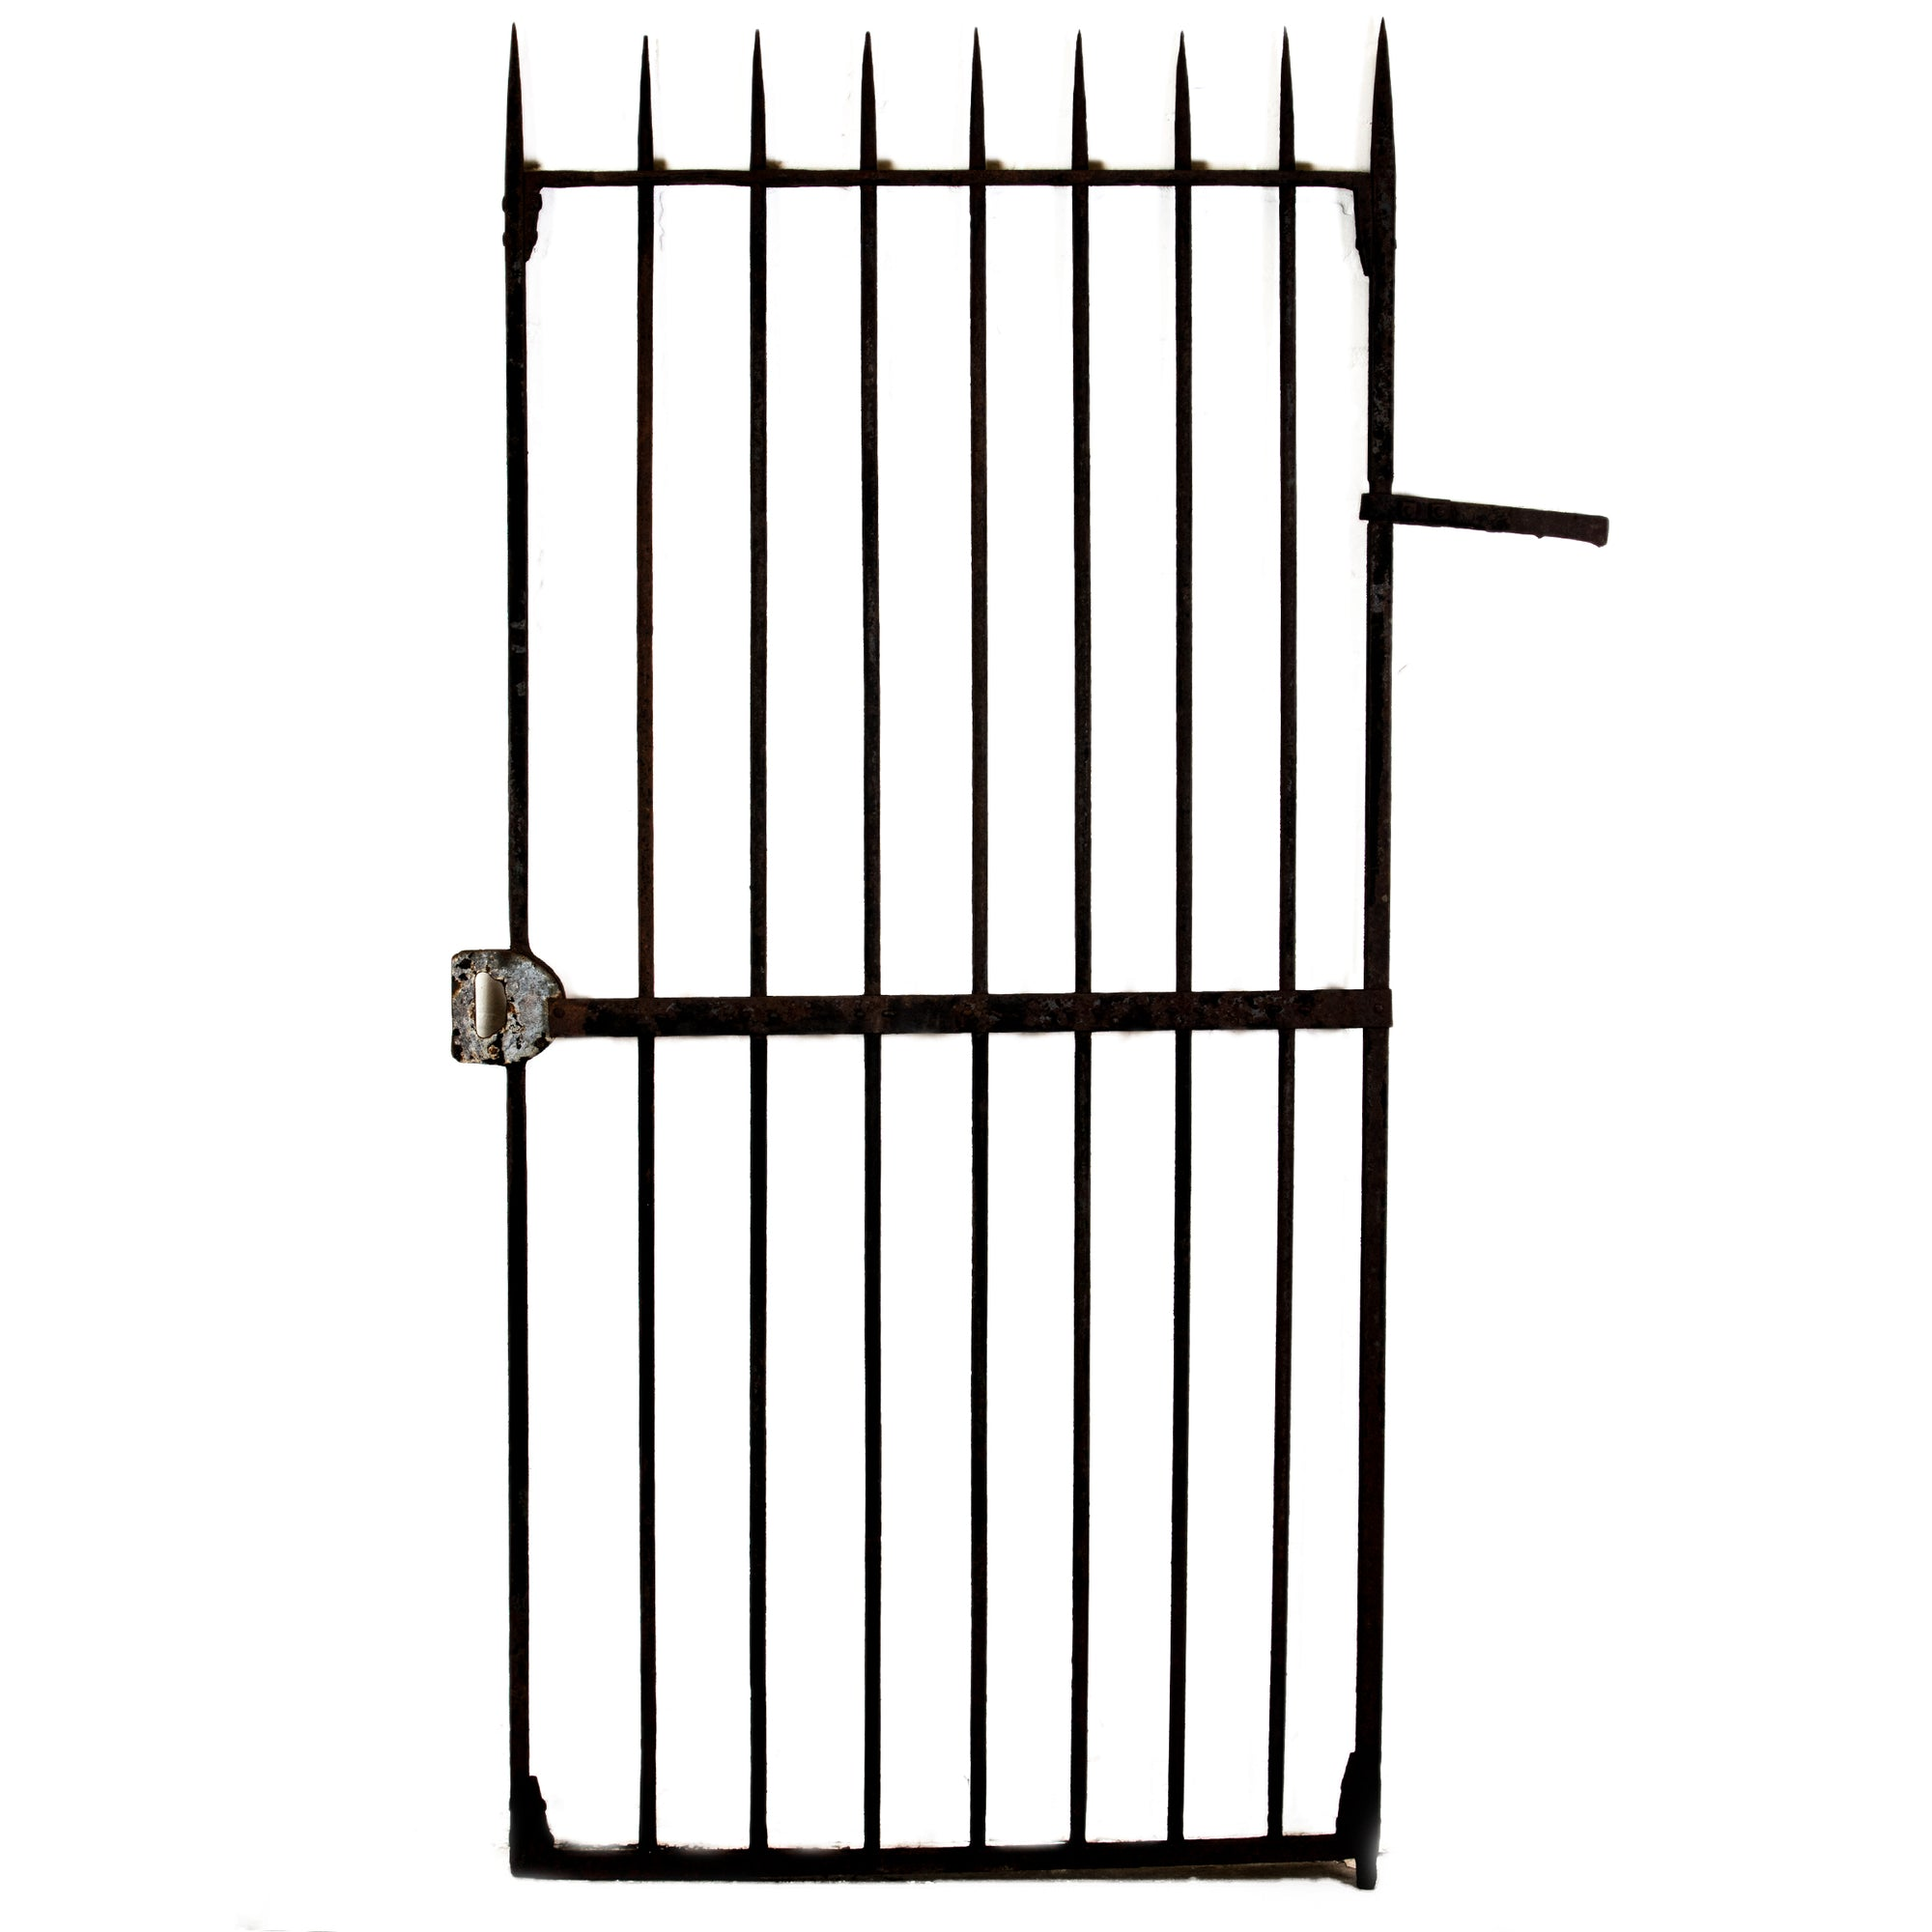 Antique Wrought Iron Gate with Spikes | The Architectural Forum